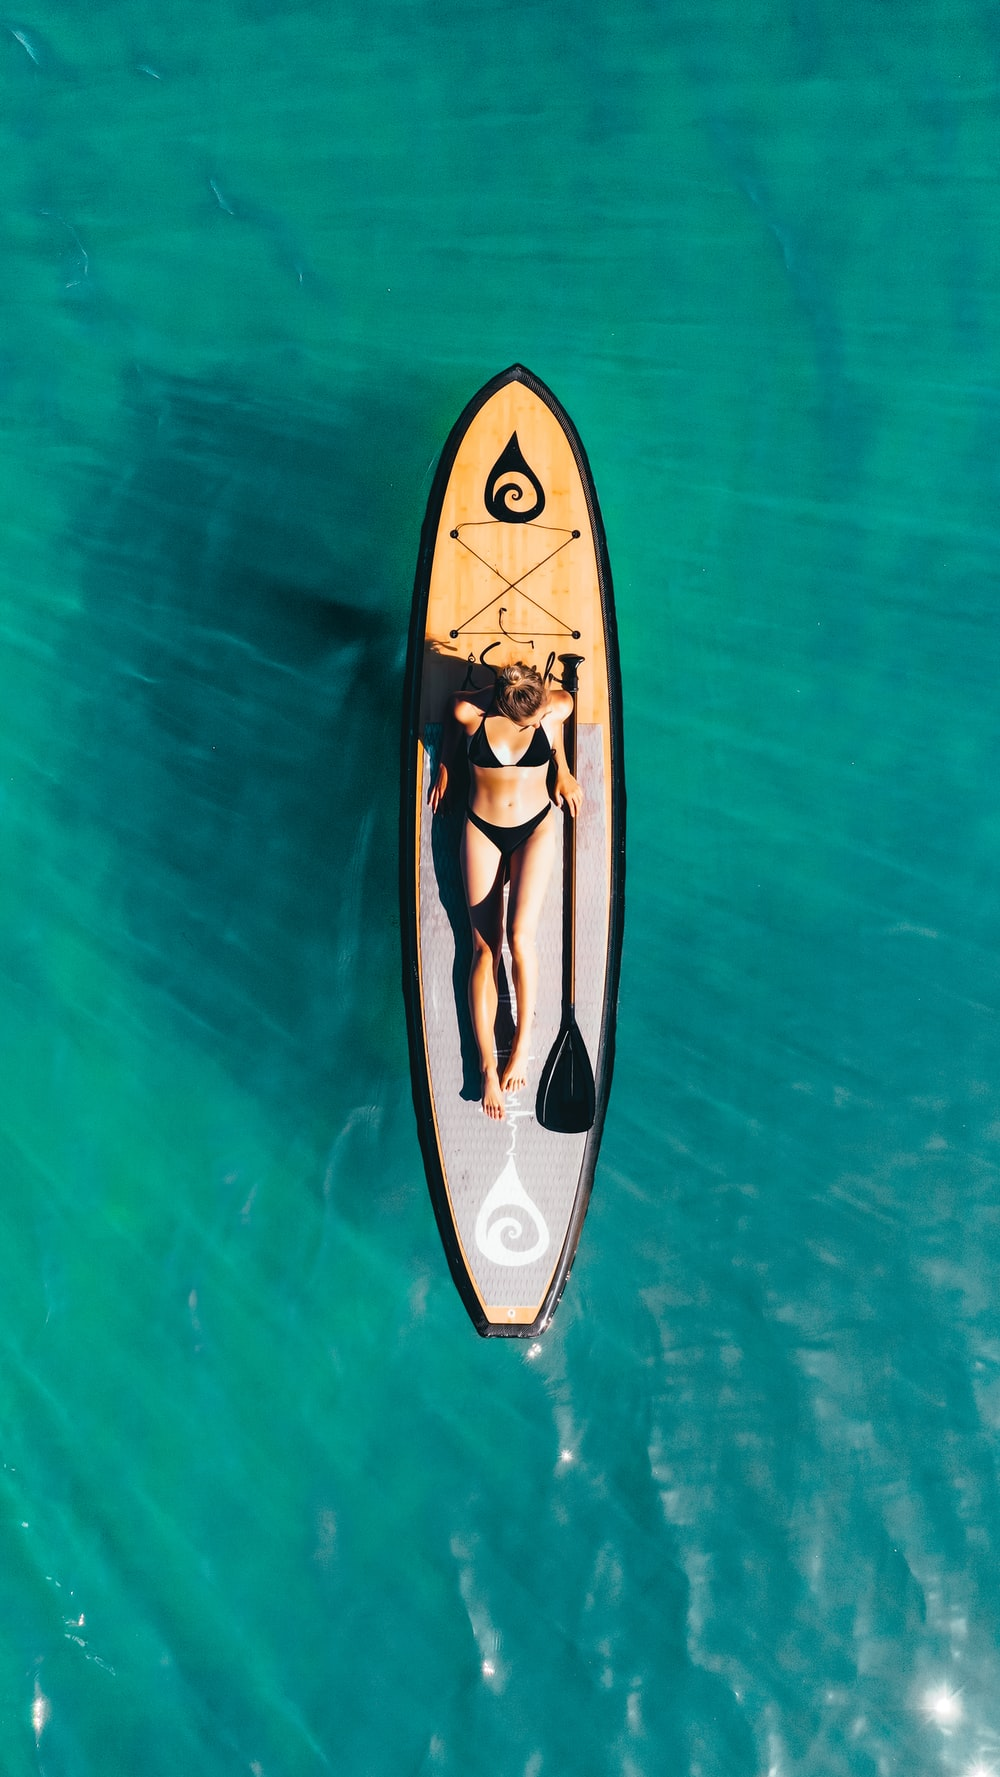 white and black surfboard on body of water